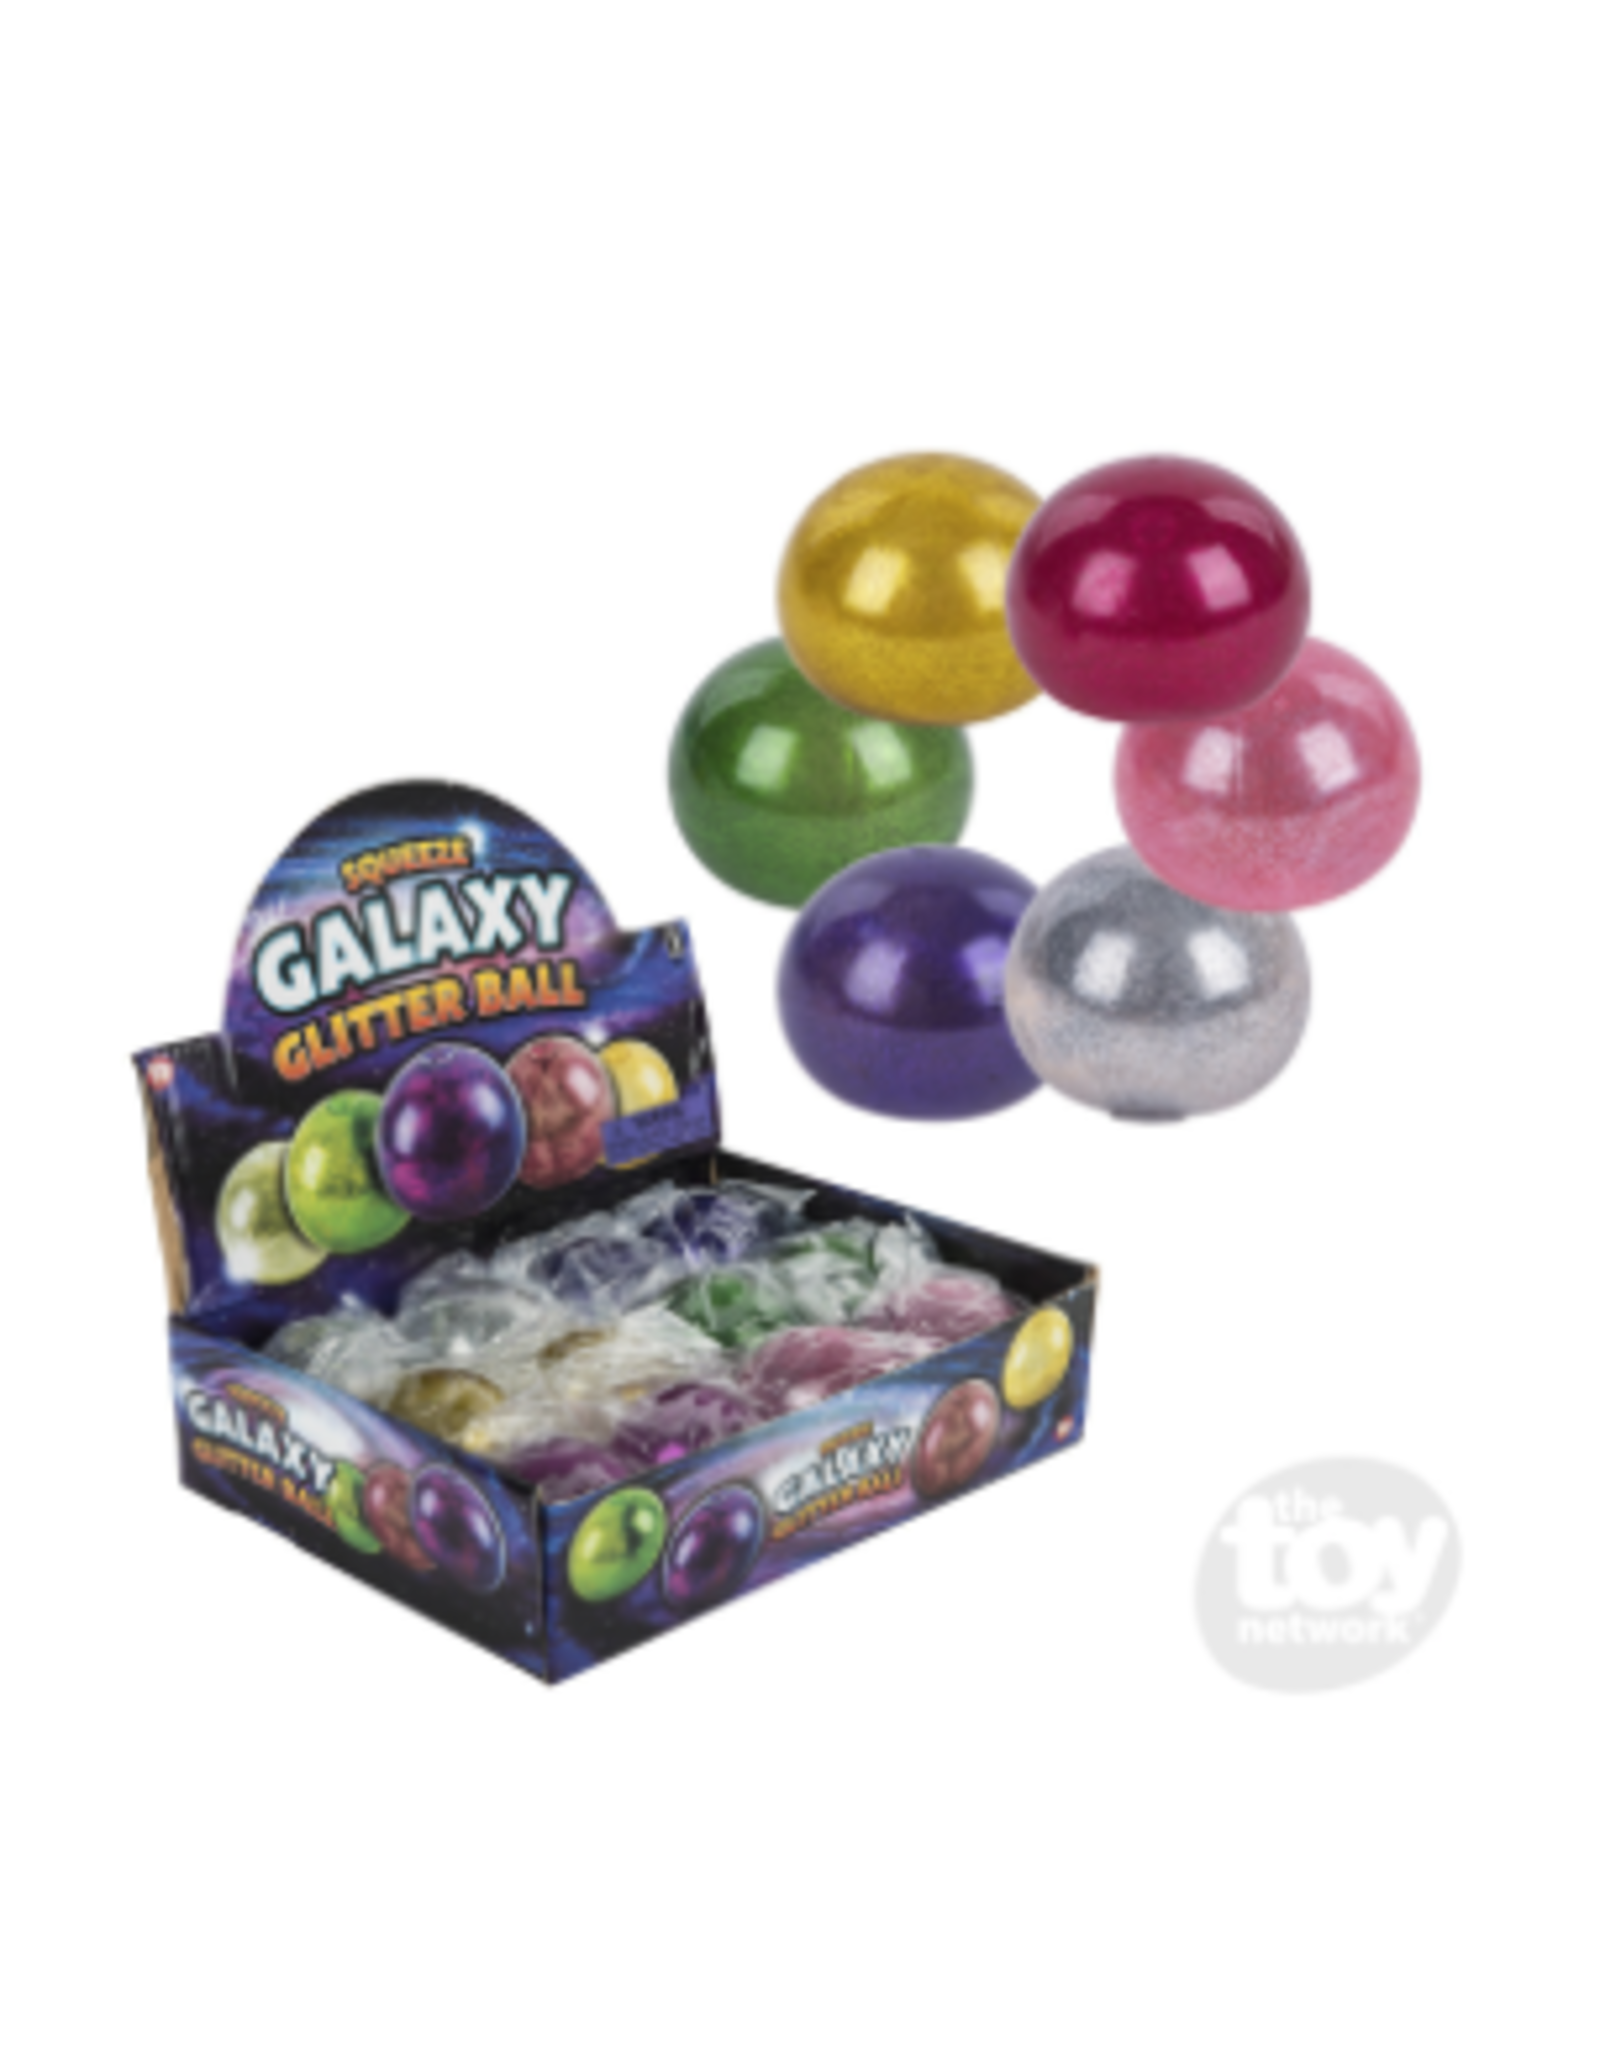 The Toy Network Squeeze Galaxy Glitter Ball